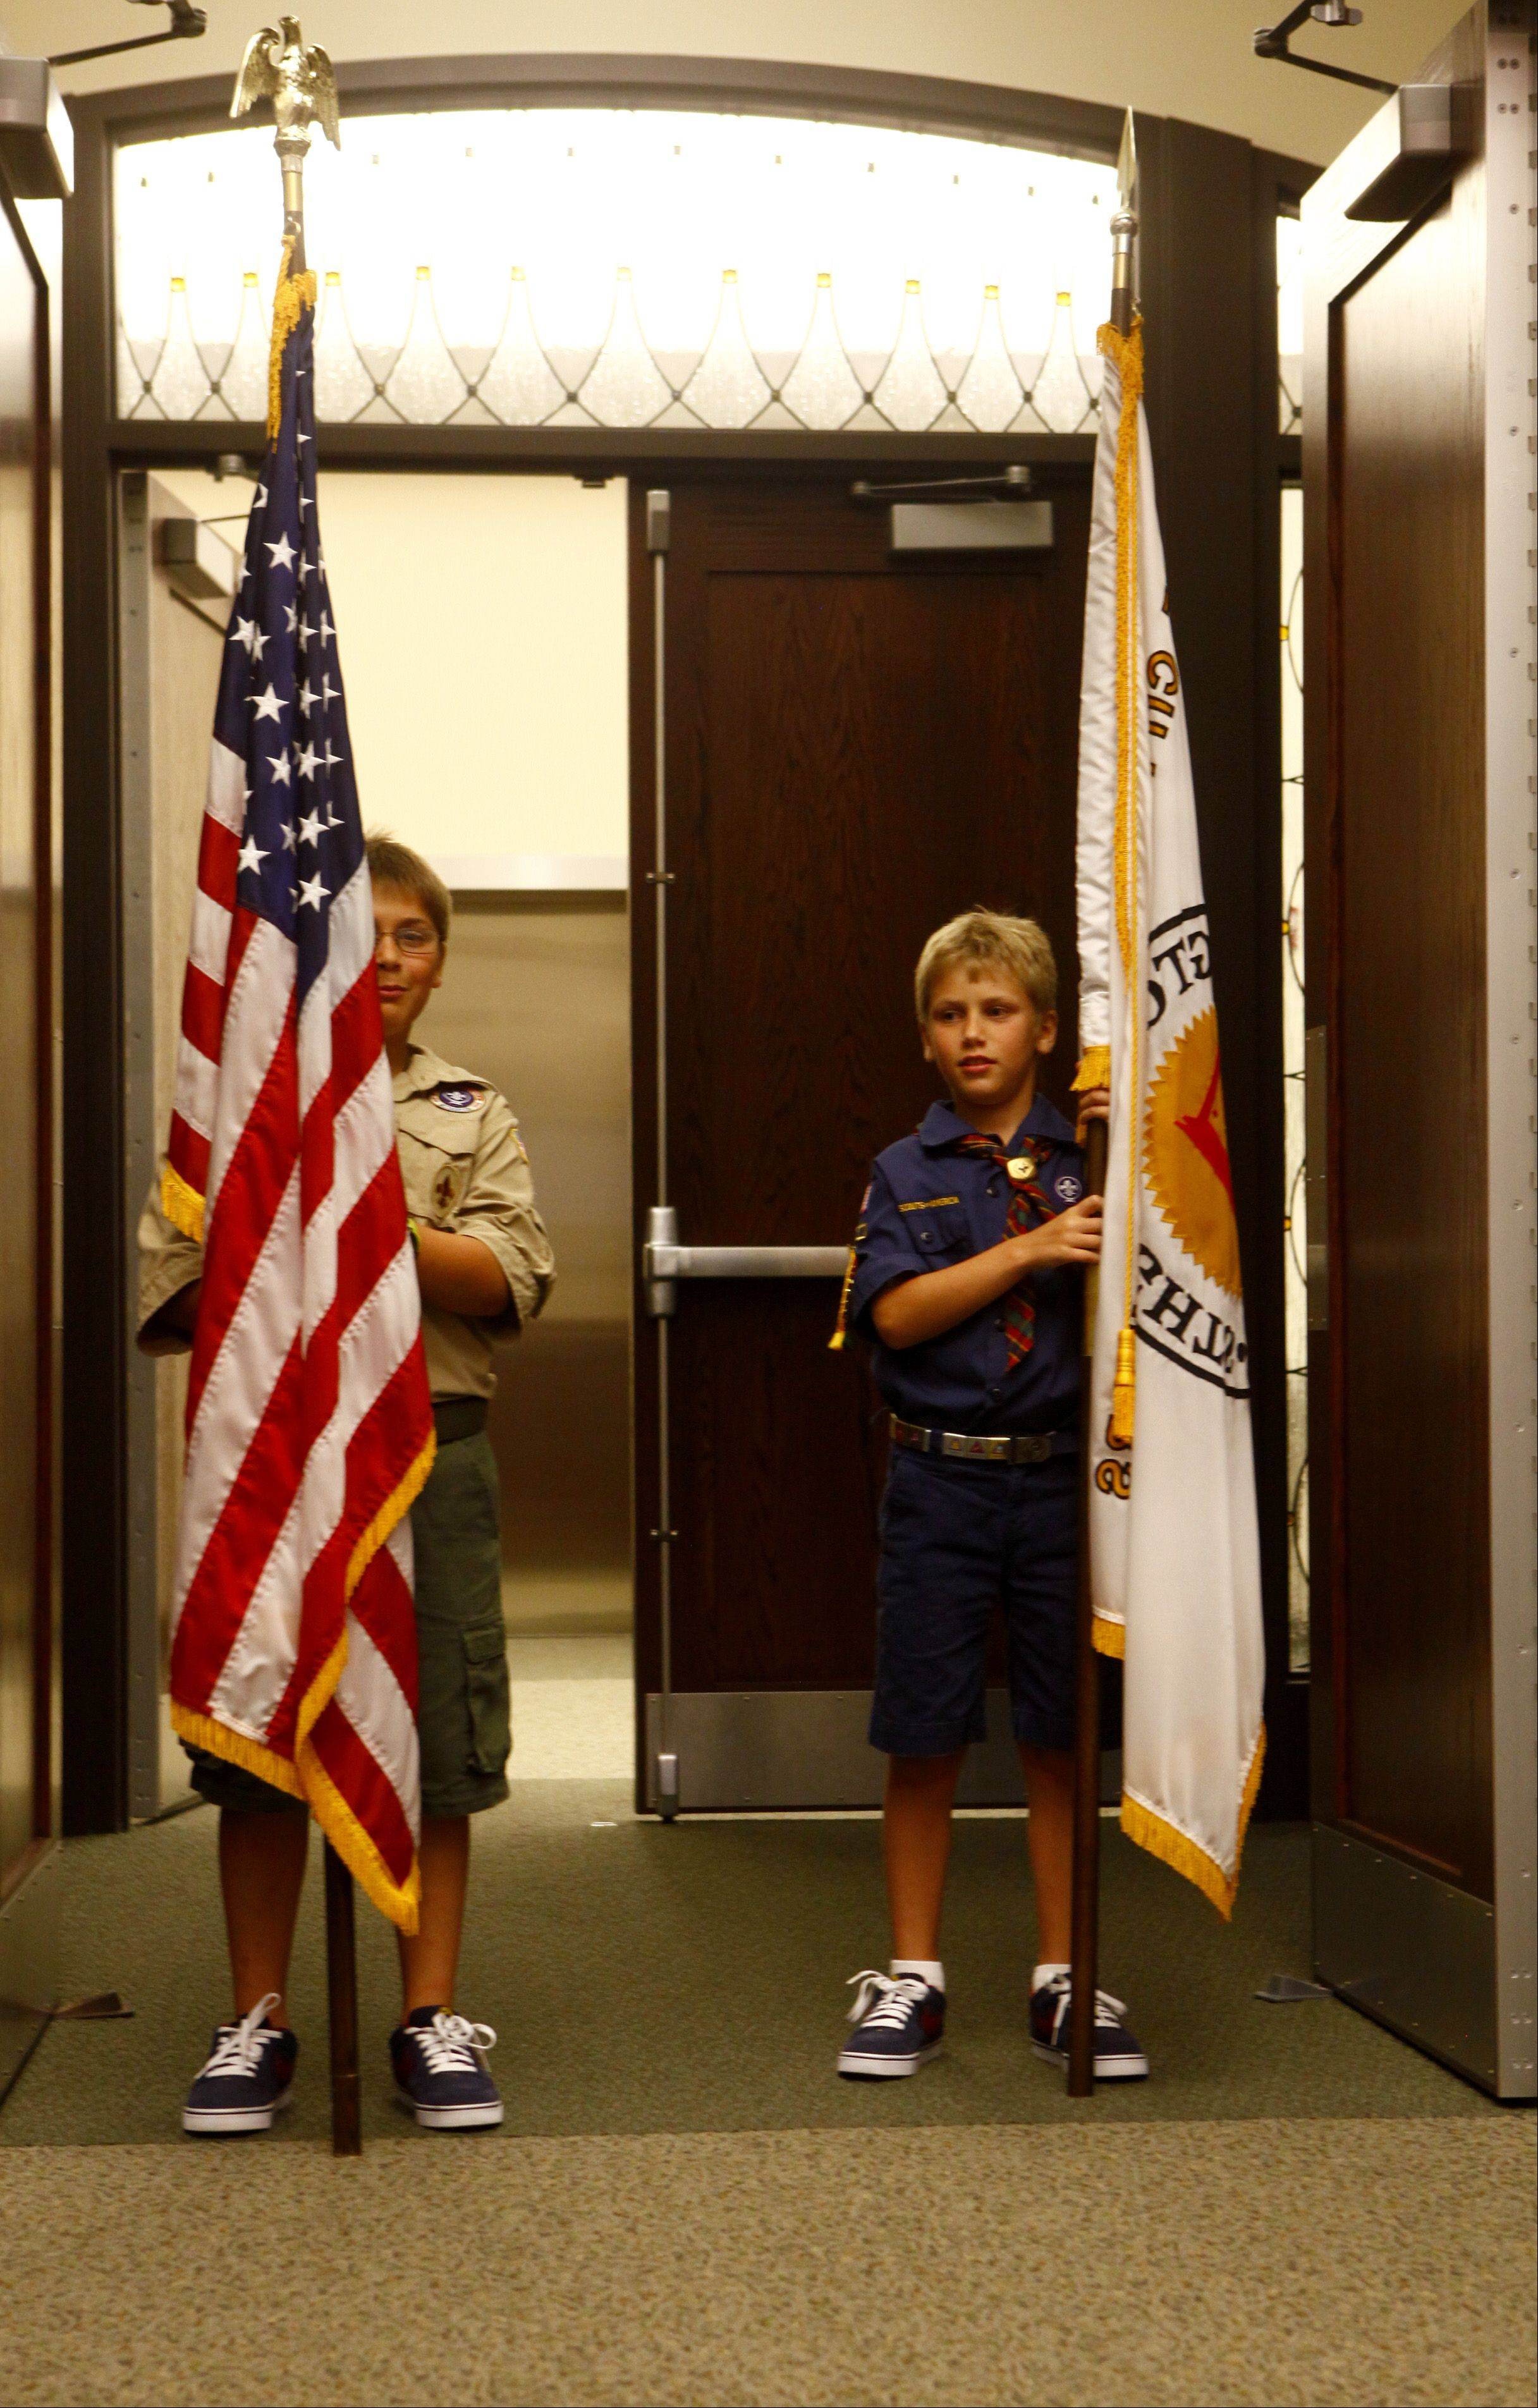 Rides Scerbin, left, and his brother, Max, carry the flags before the meeting of the Arlington Heights Village Board Monday, July 18.